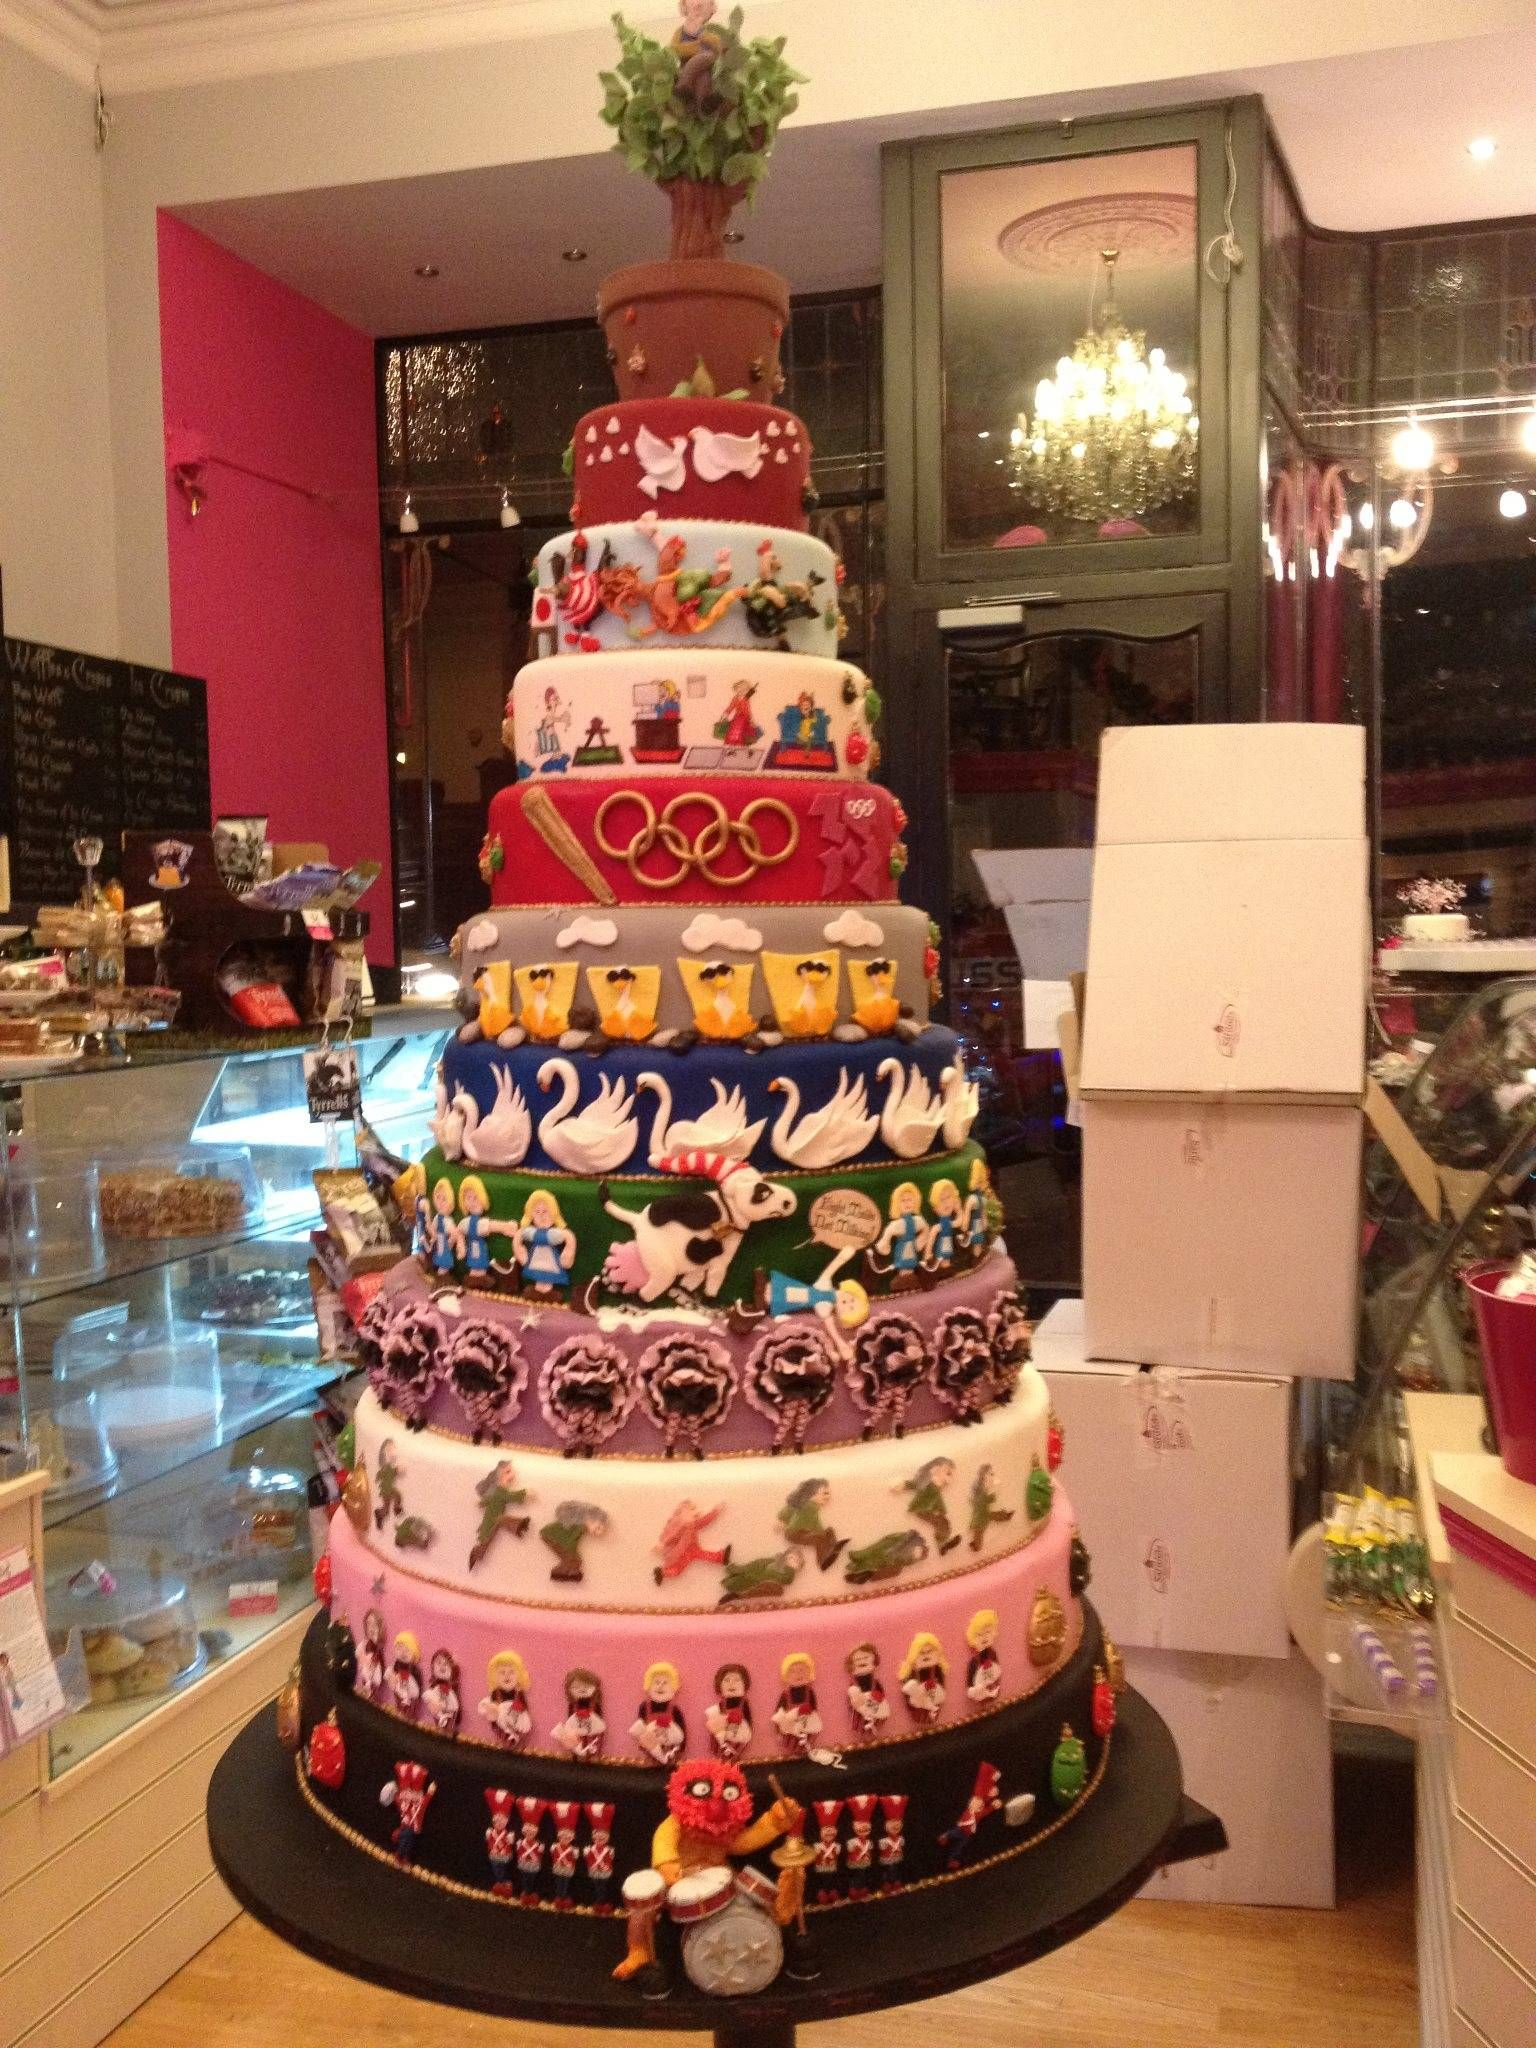 12 Days Of Christmas Cake Love How They Interpreted Each Tier Uniquely The La S